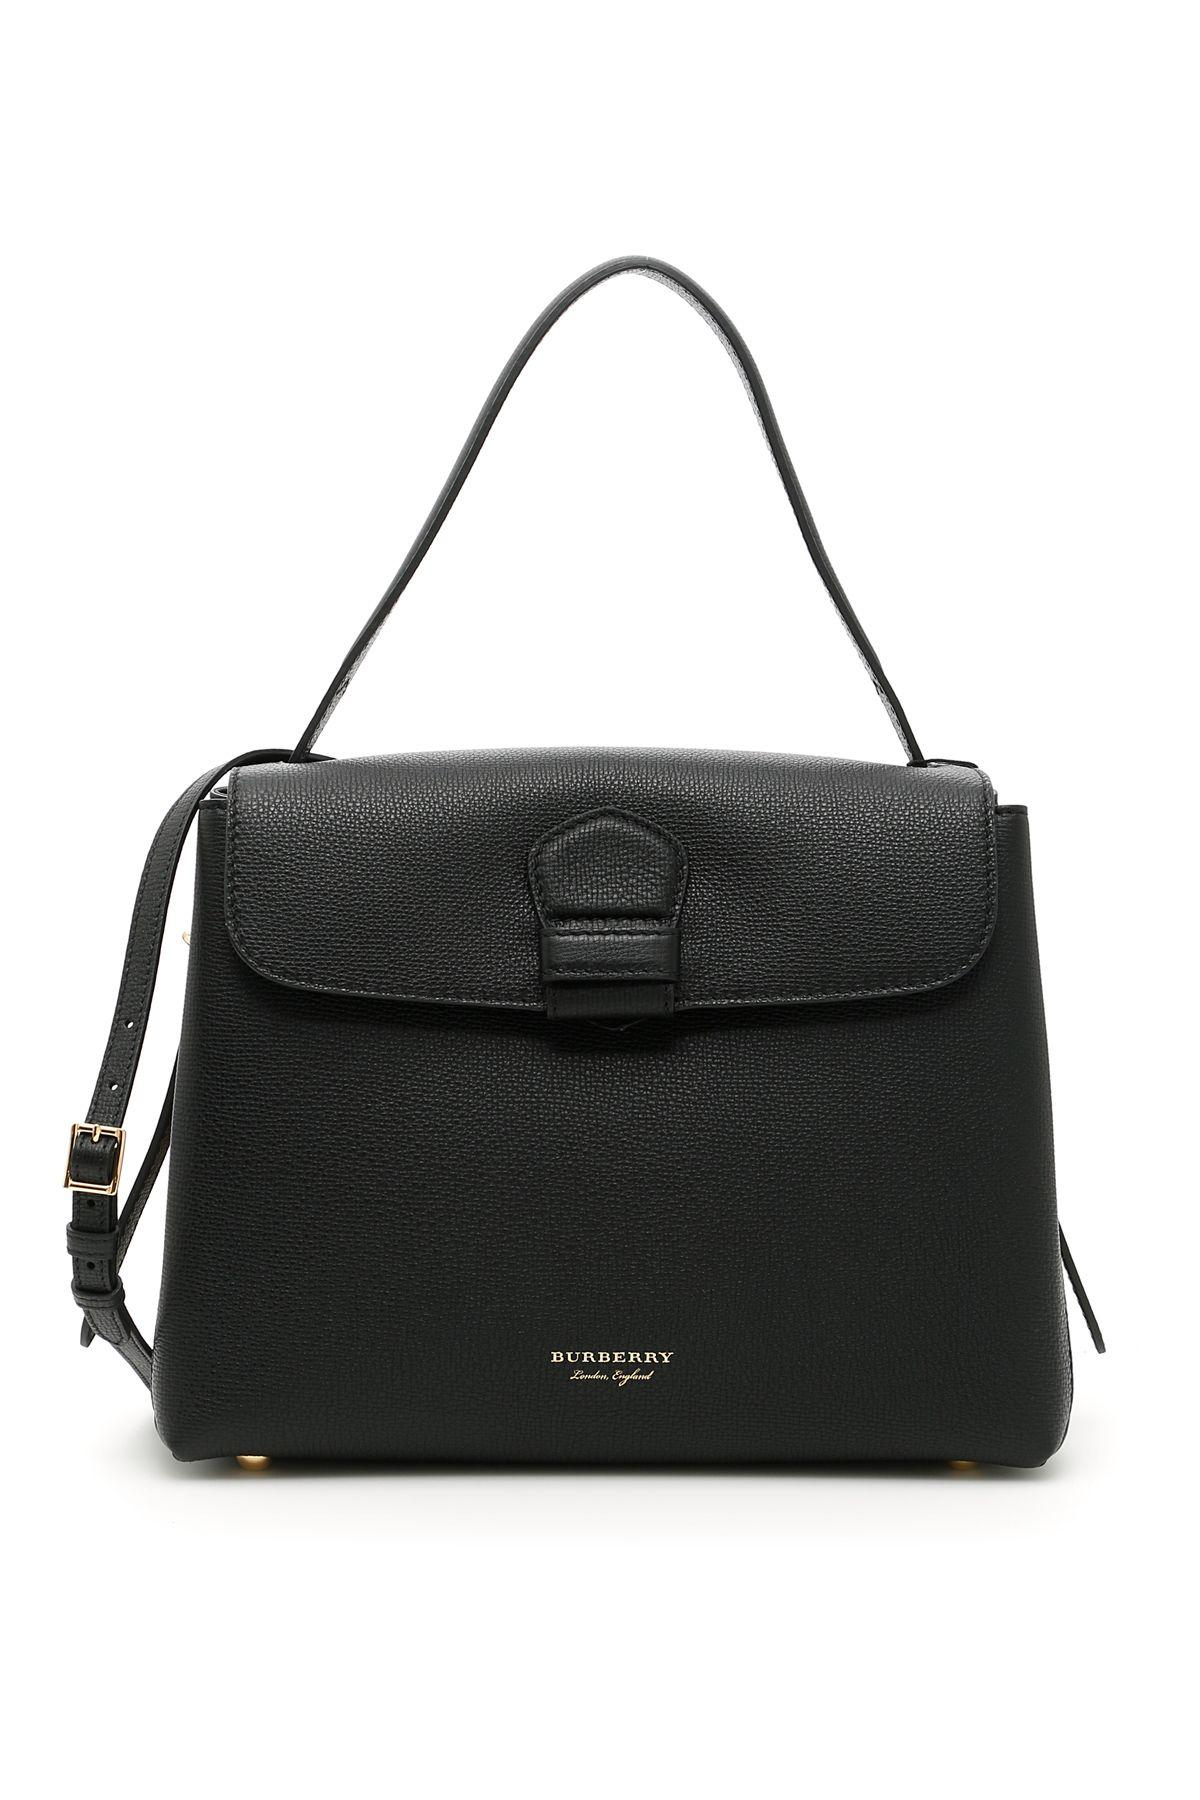 239f7cfd80 Burberry Medium Camberley Leather & House Check Top Handle Satchel In Black